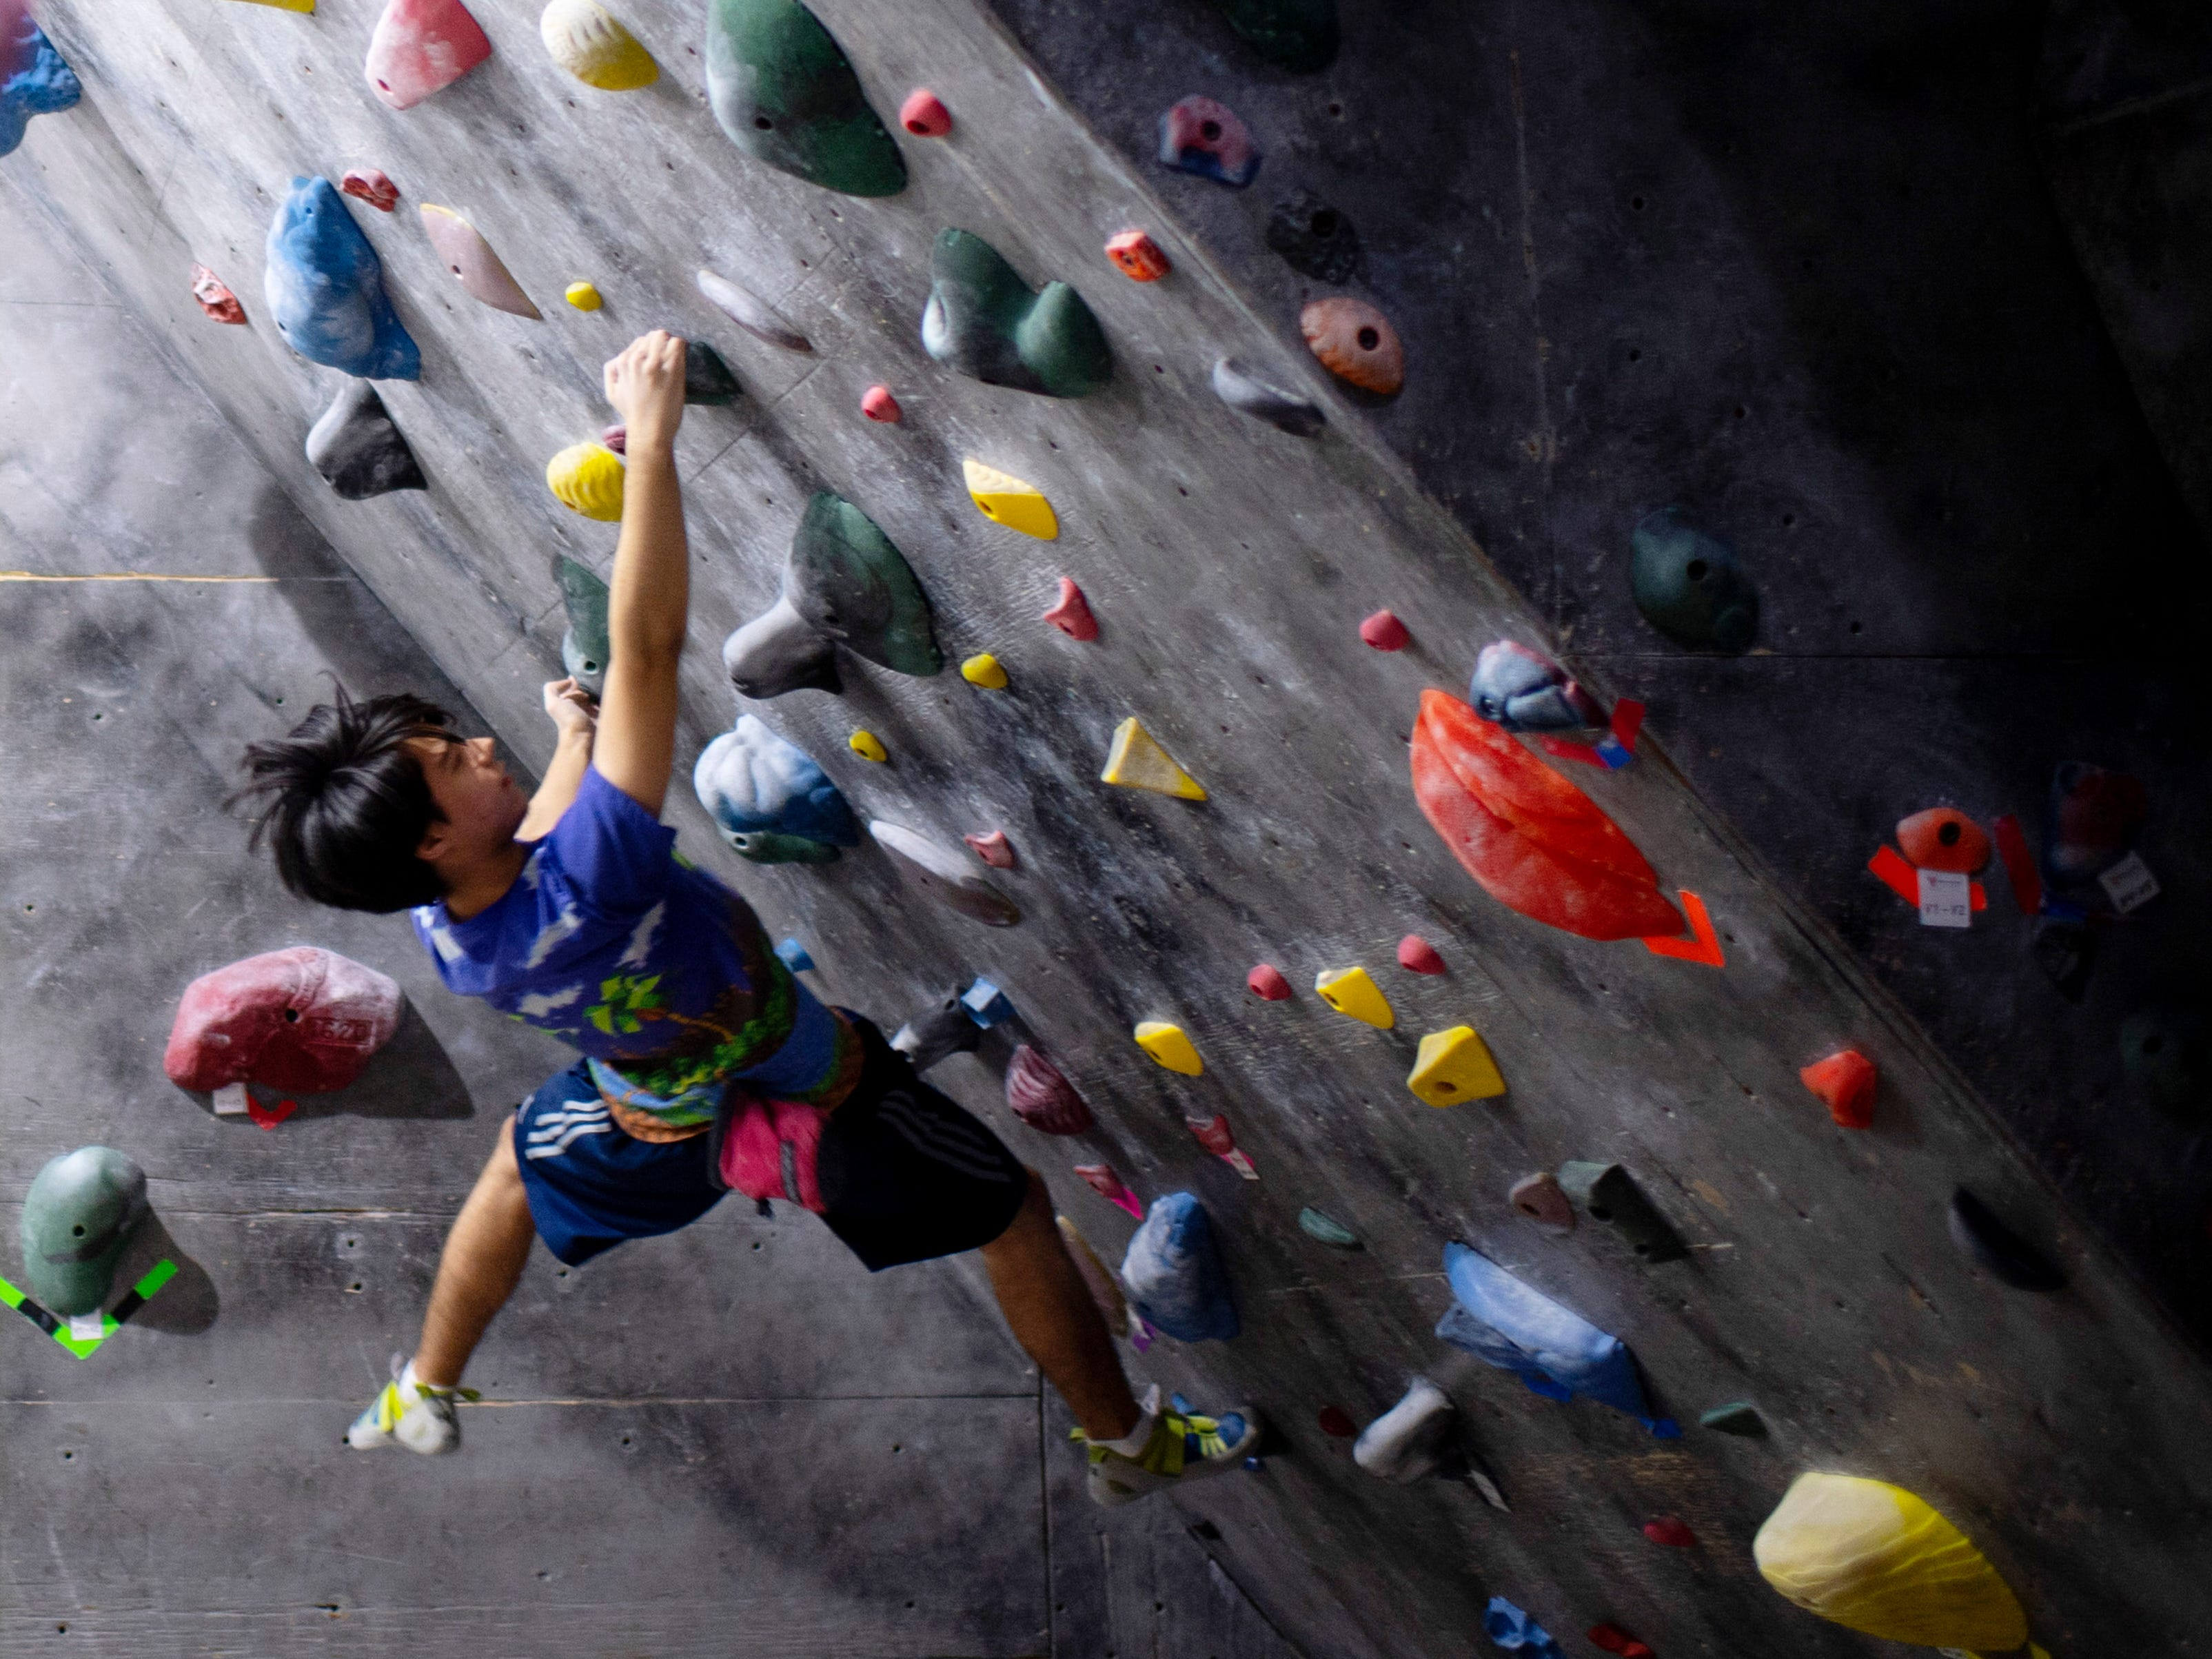 Kaleo Chase, 17, of Newburgh, Ind., traverses through a portion of the bouldering area at Vertical eXcape at 1315 N. Royal Avenue in Evansville Friday evening.